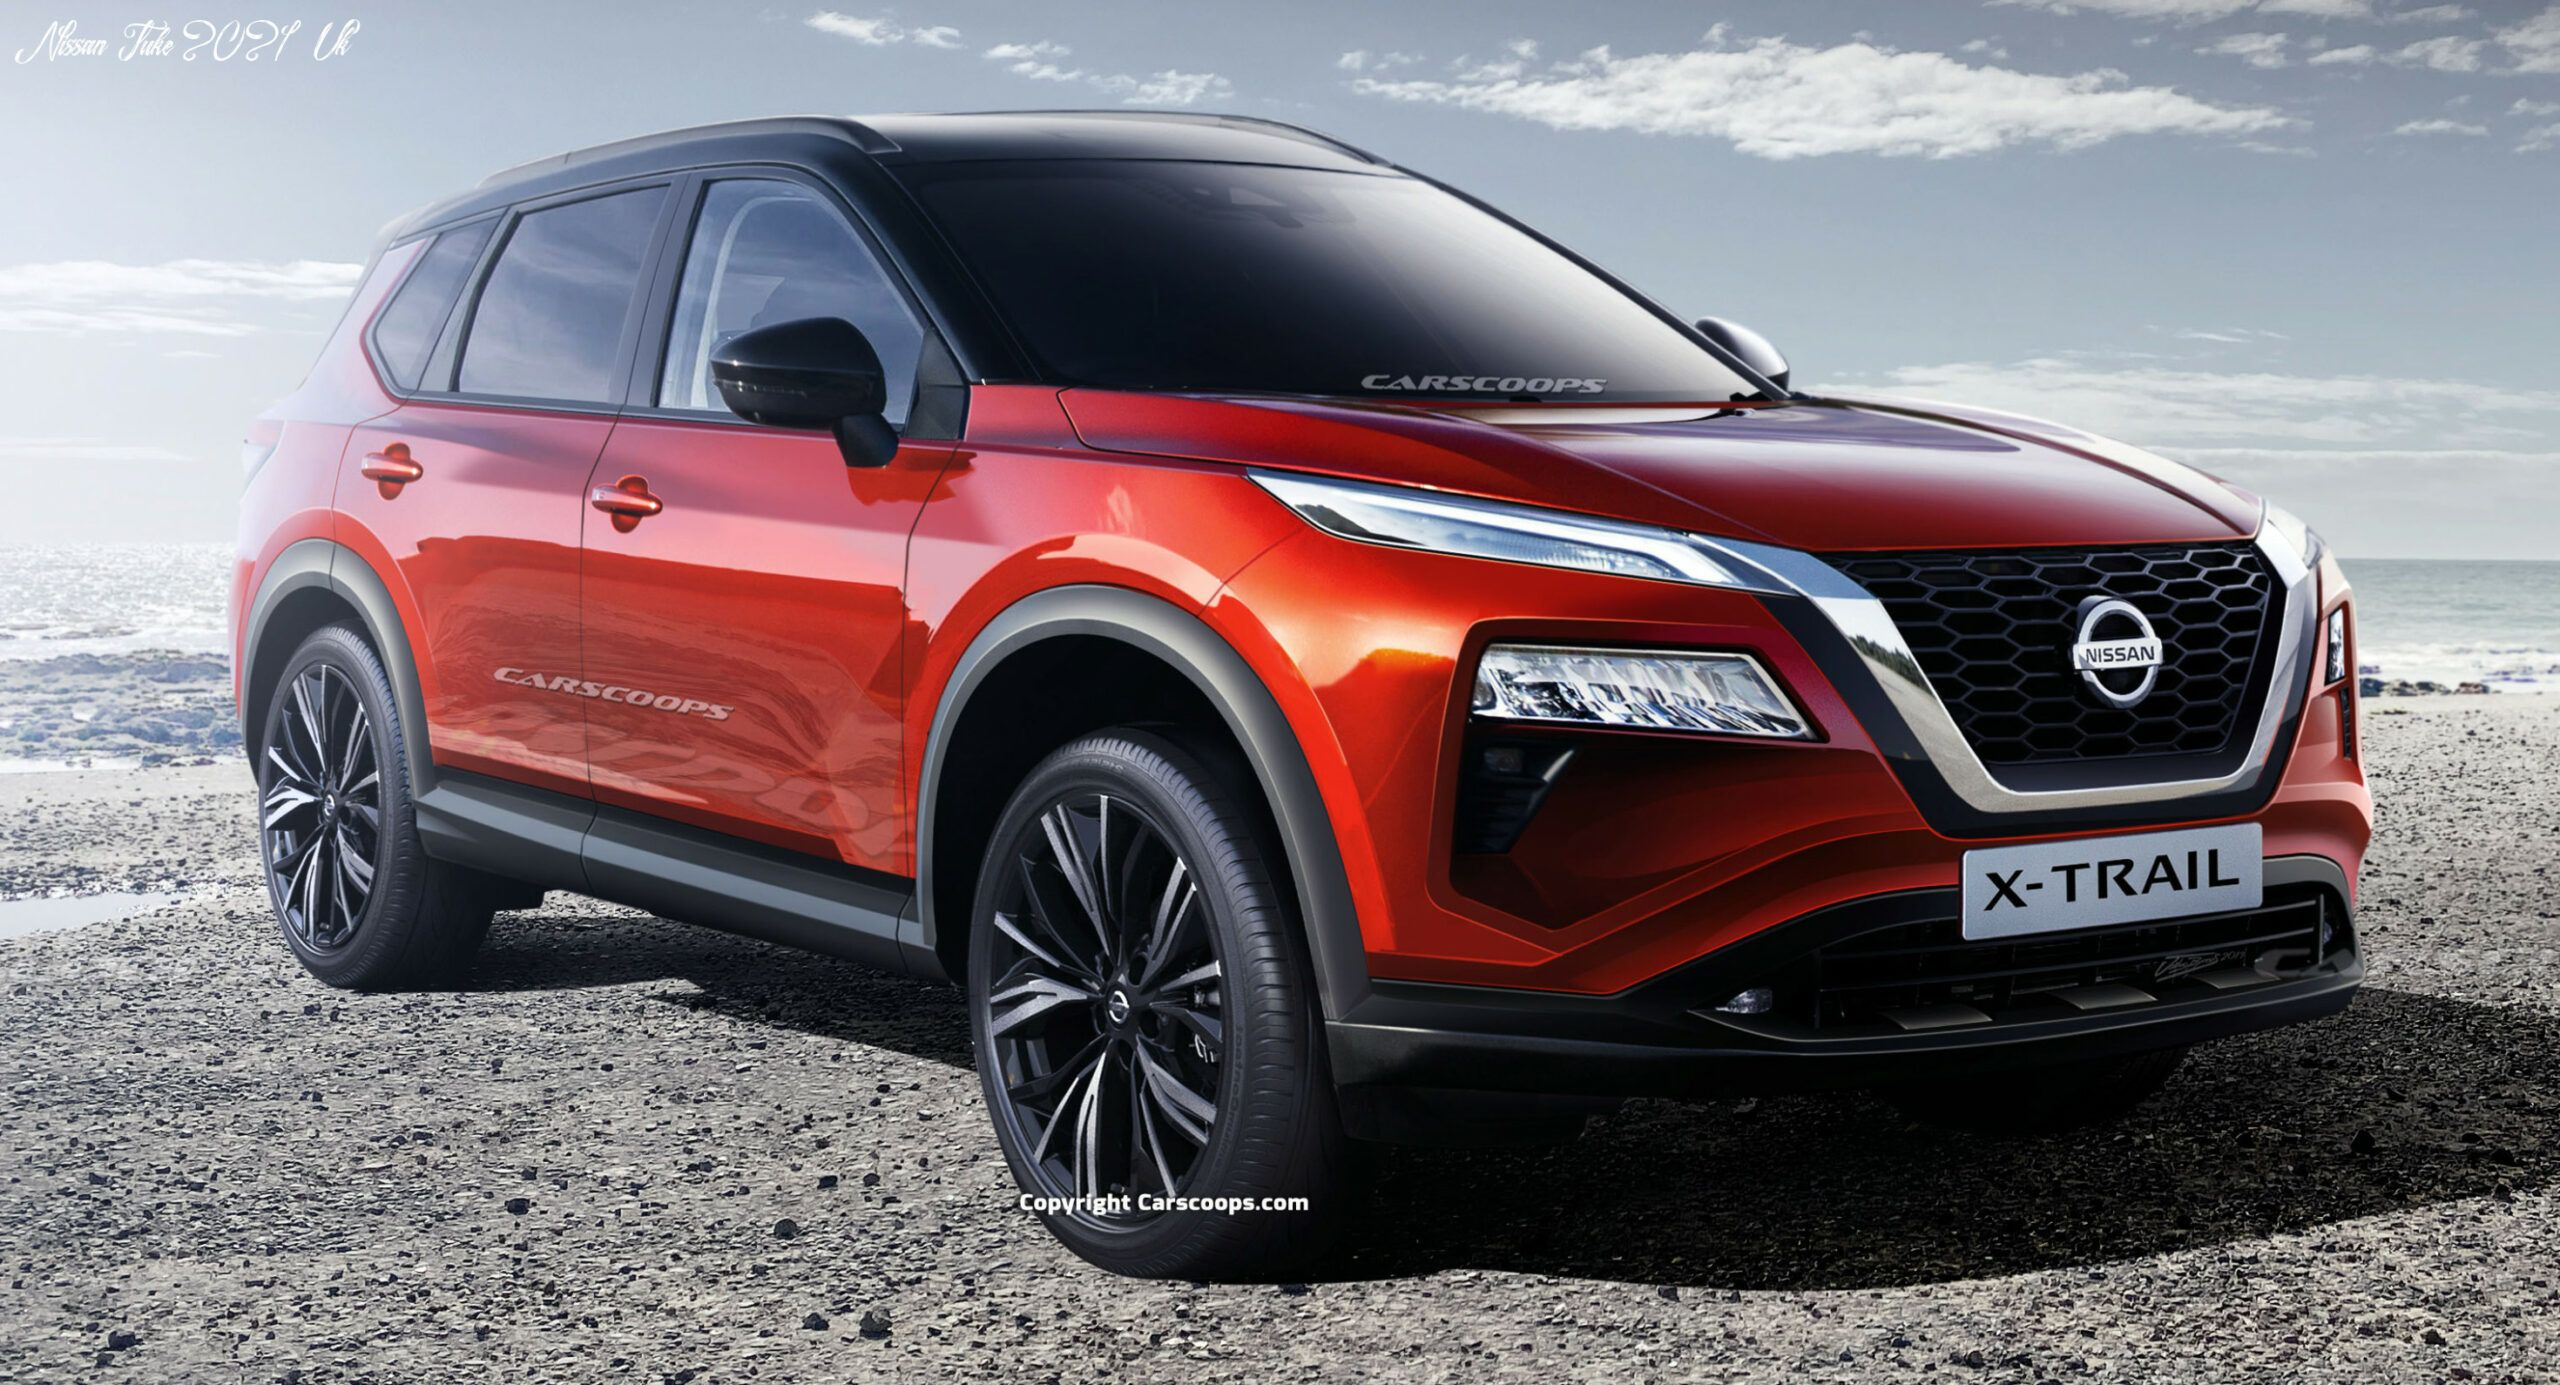 Nissan Juke 2021 Uk Concept in 2020 Nissan rogue, Nissan